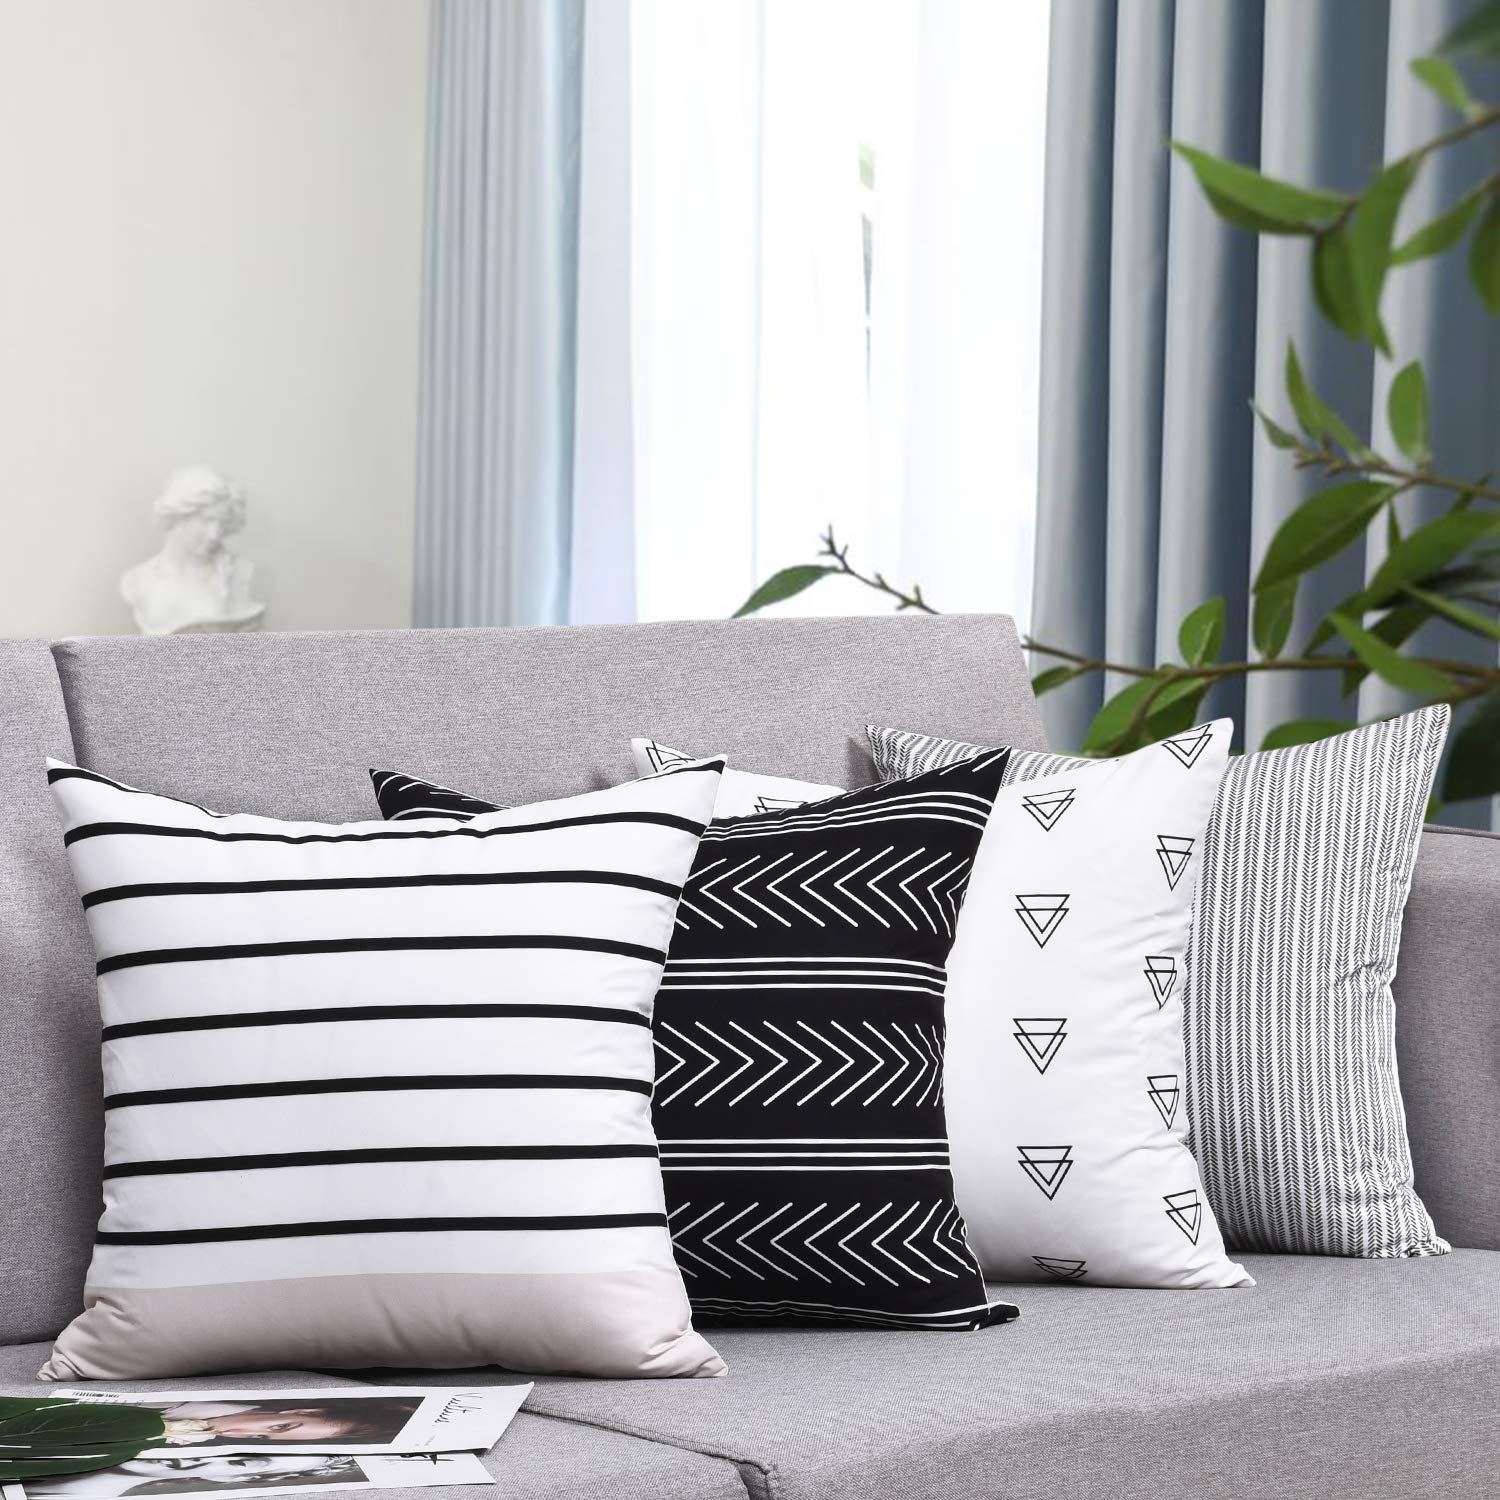 wendana pillow covers stripe pattern throw pillow case daily decorations sofa throw pillow case cushion covers zippered pillowcase 18 x 18 set of 4